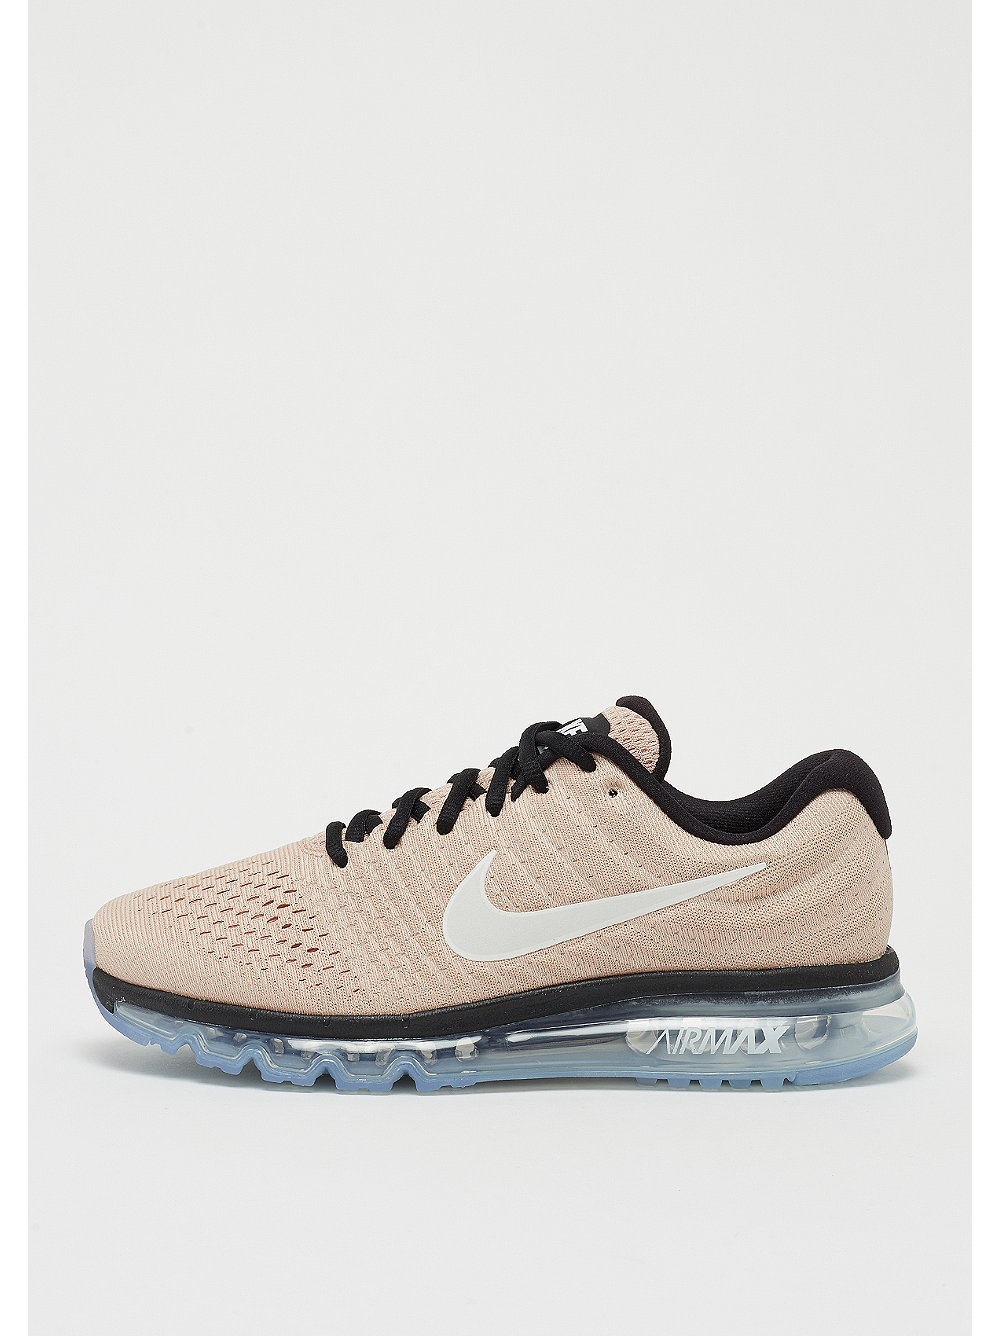 nike air max 2017 dames kleur